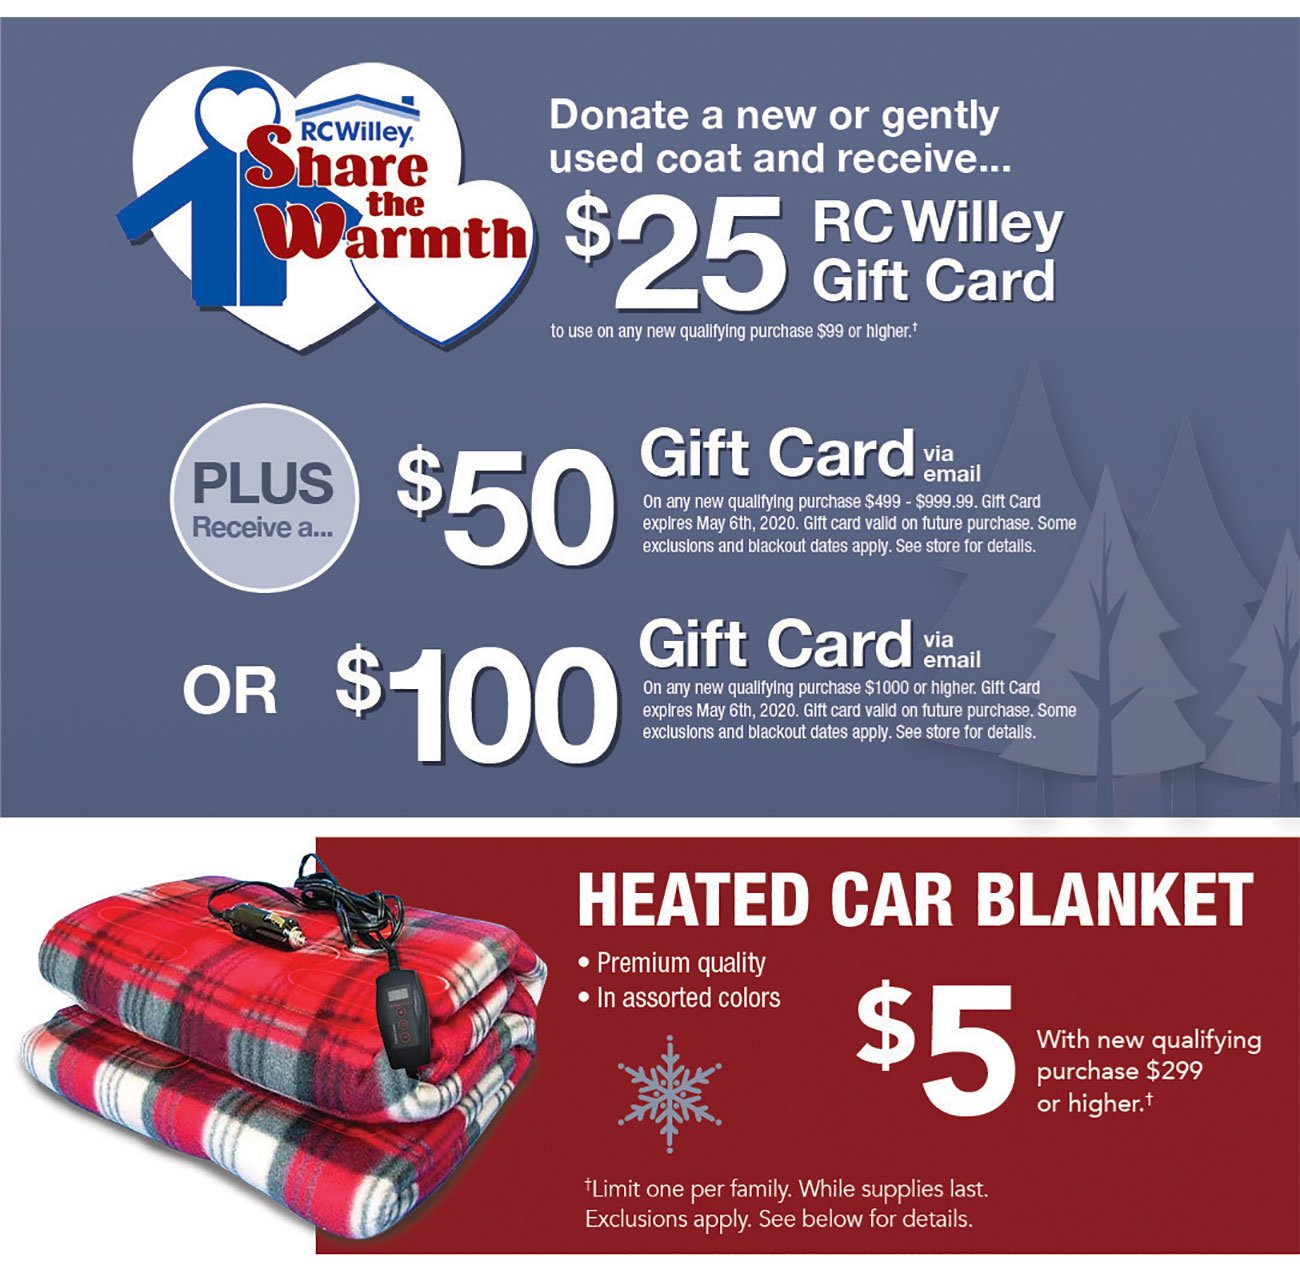 Share-the-Warmth-Heated-Car-Blanket